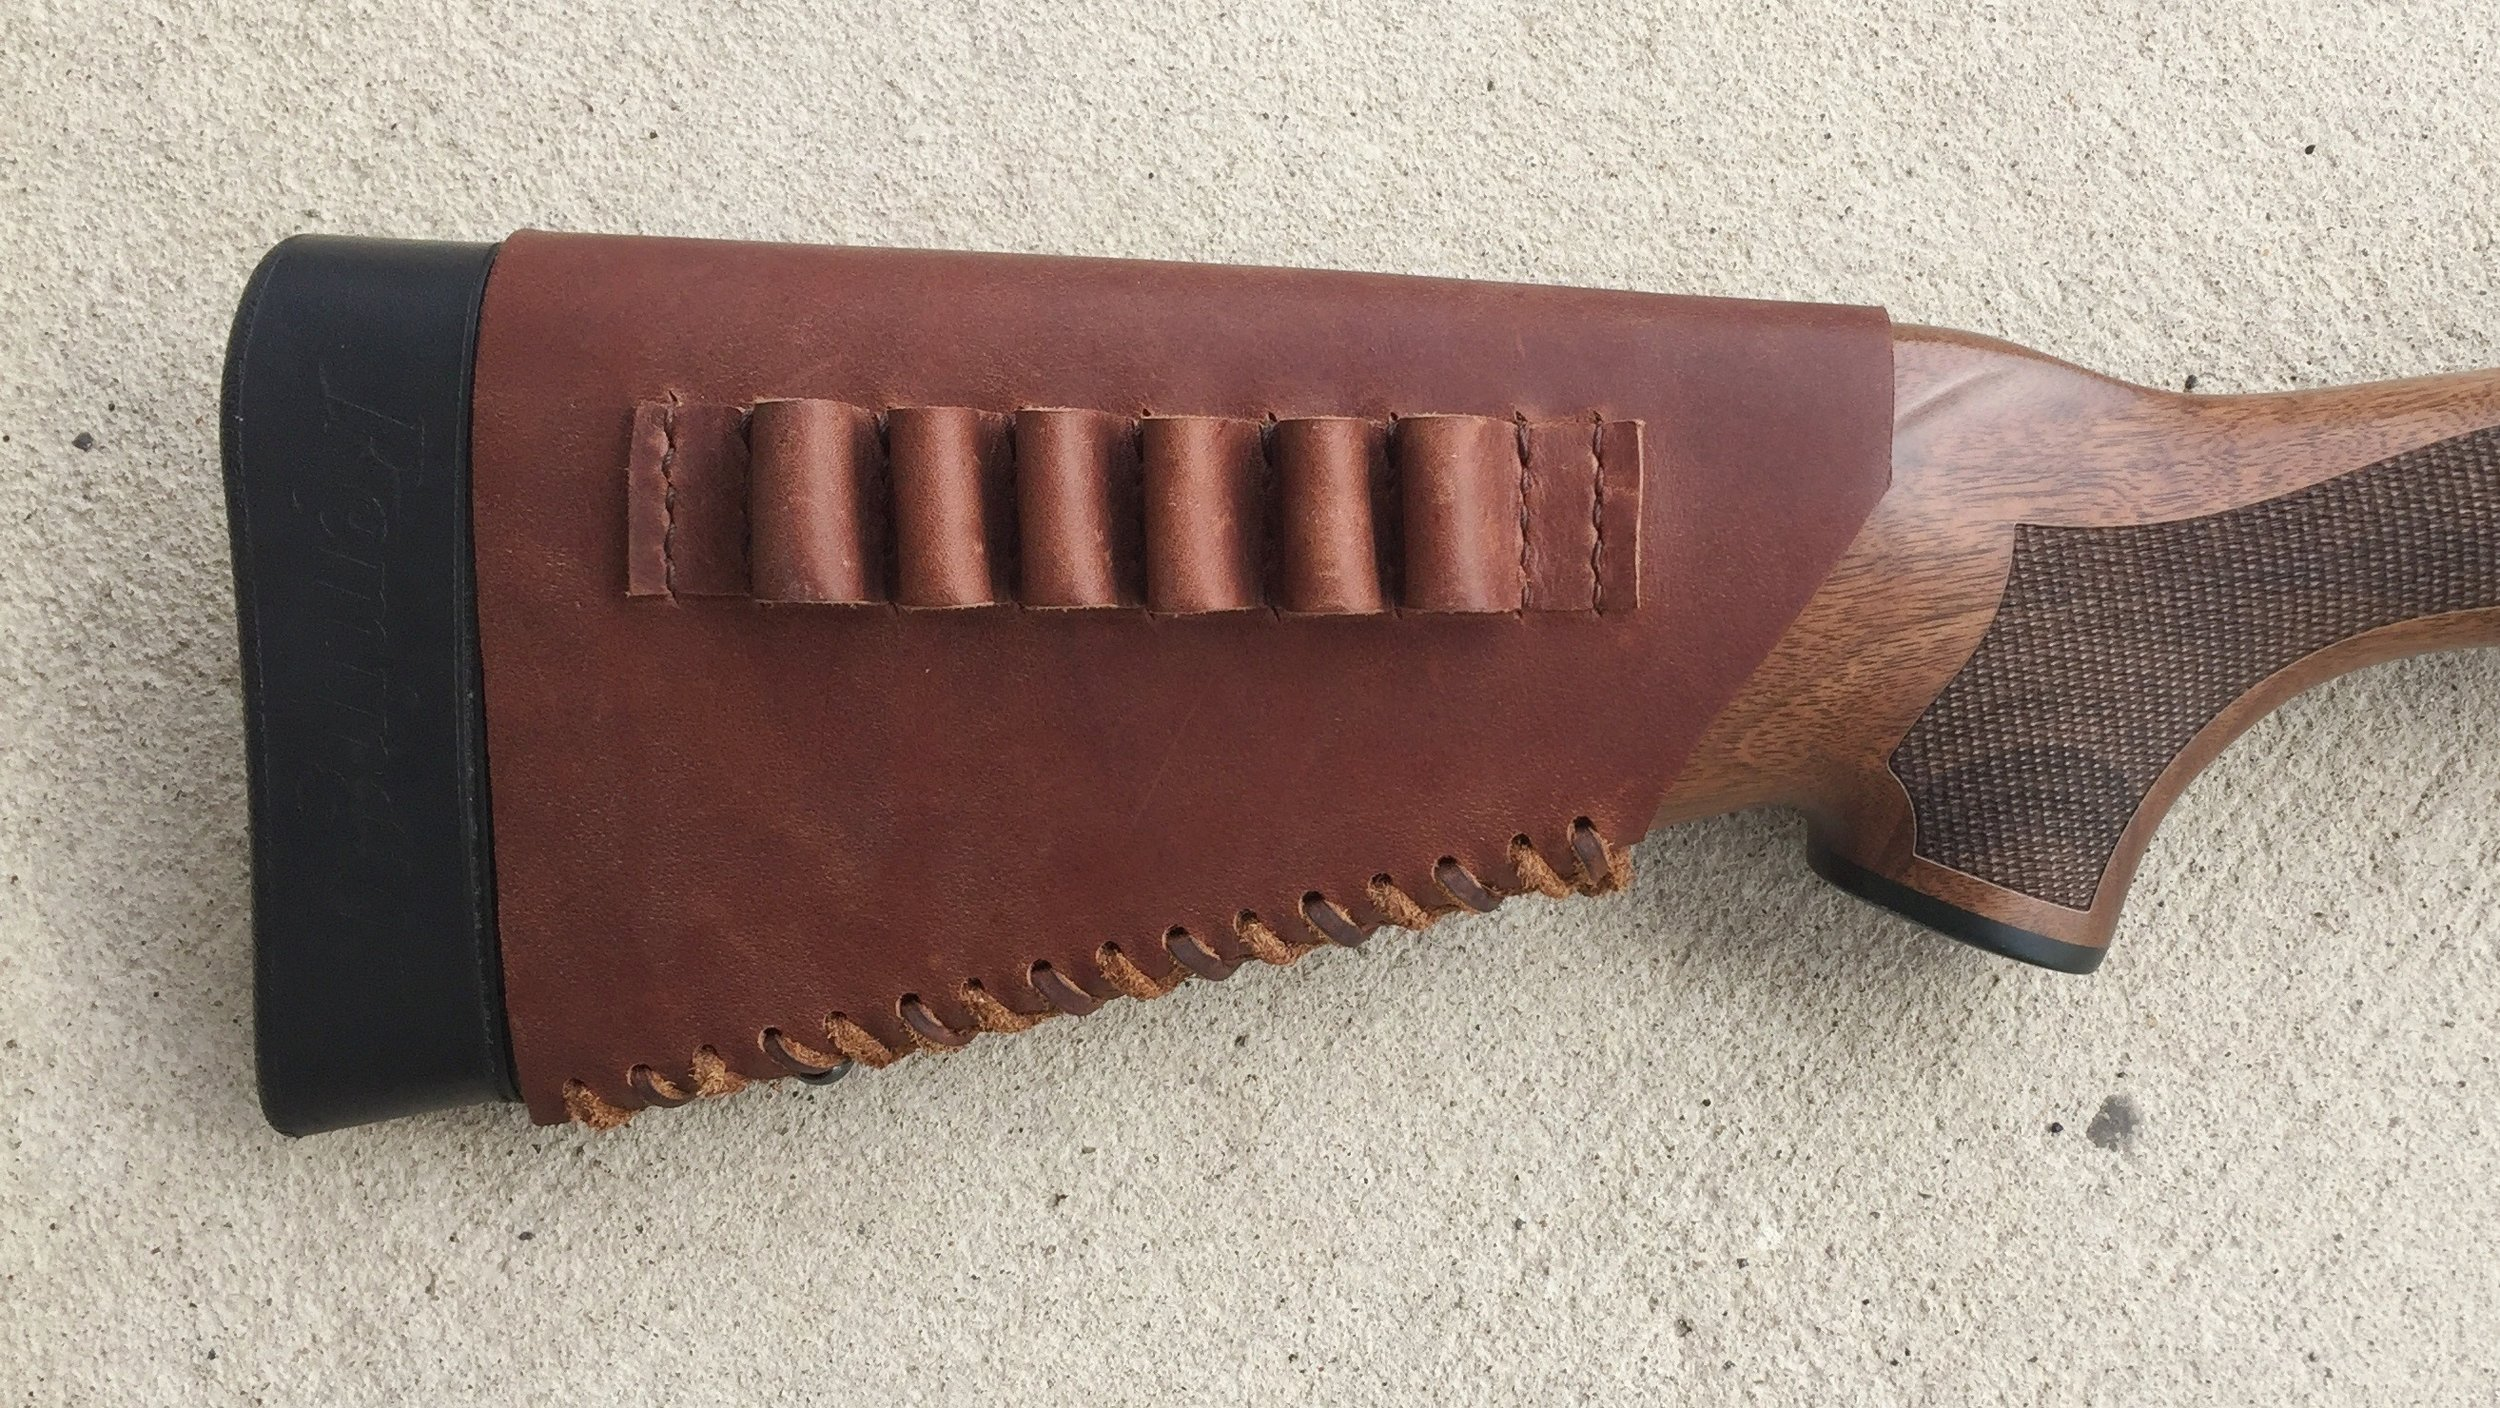 Circle M Brand - leather Buttstock Cuff with Loops for ammo.JPG